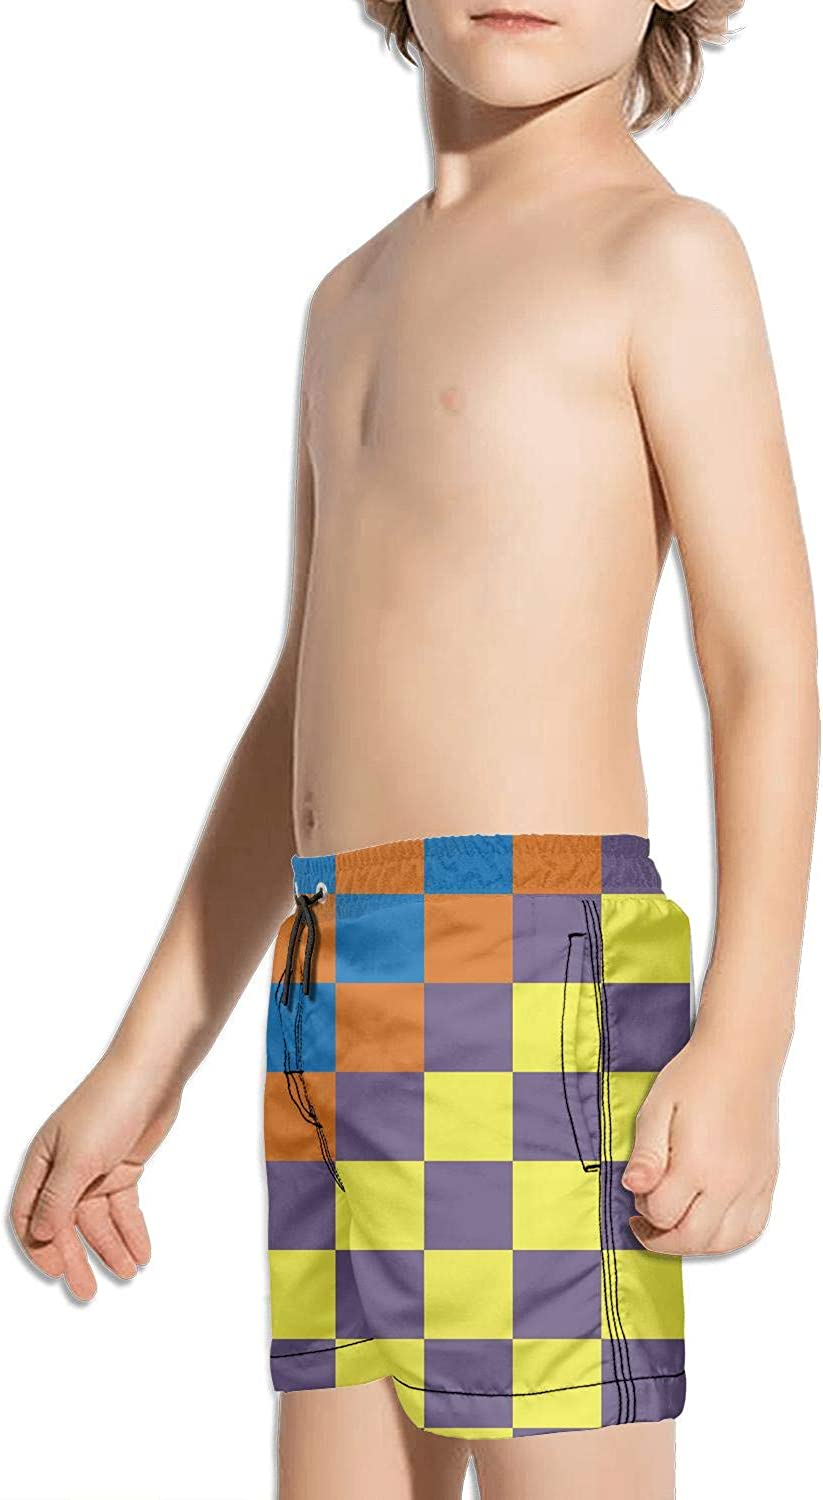 FullBo Checkerboard Abstract Colorful Square Little Boys Short Swim Trunks Quick Dry Beach Shorts